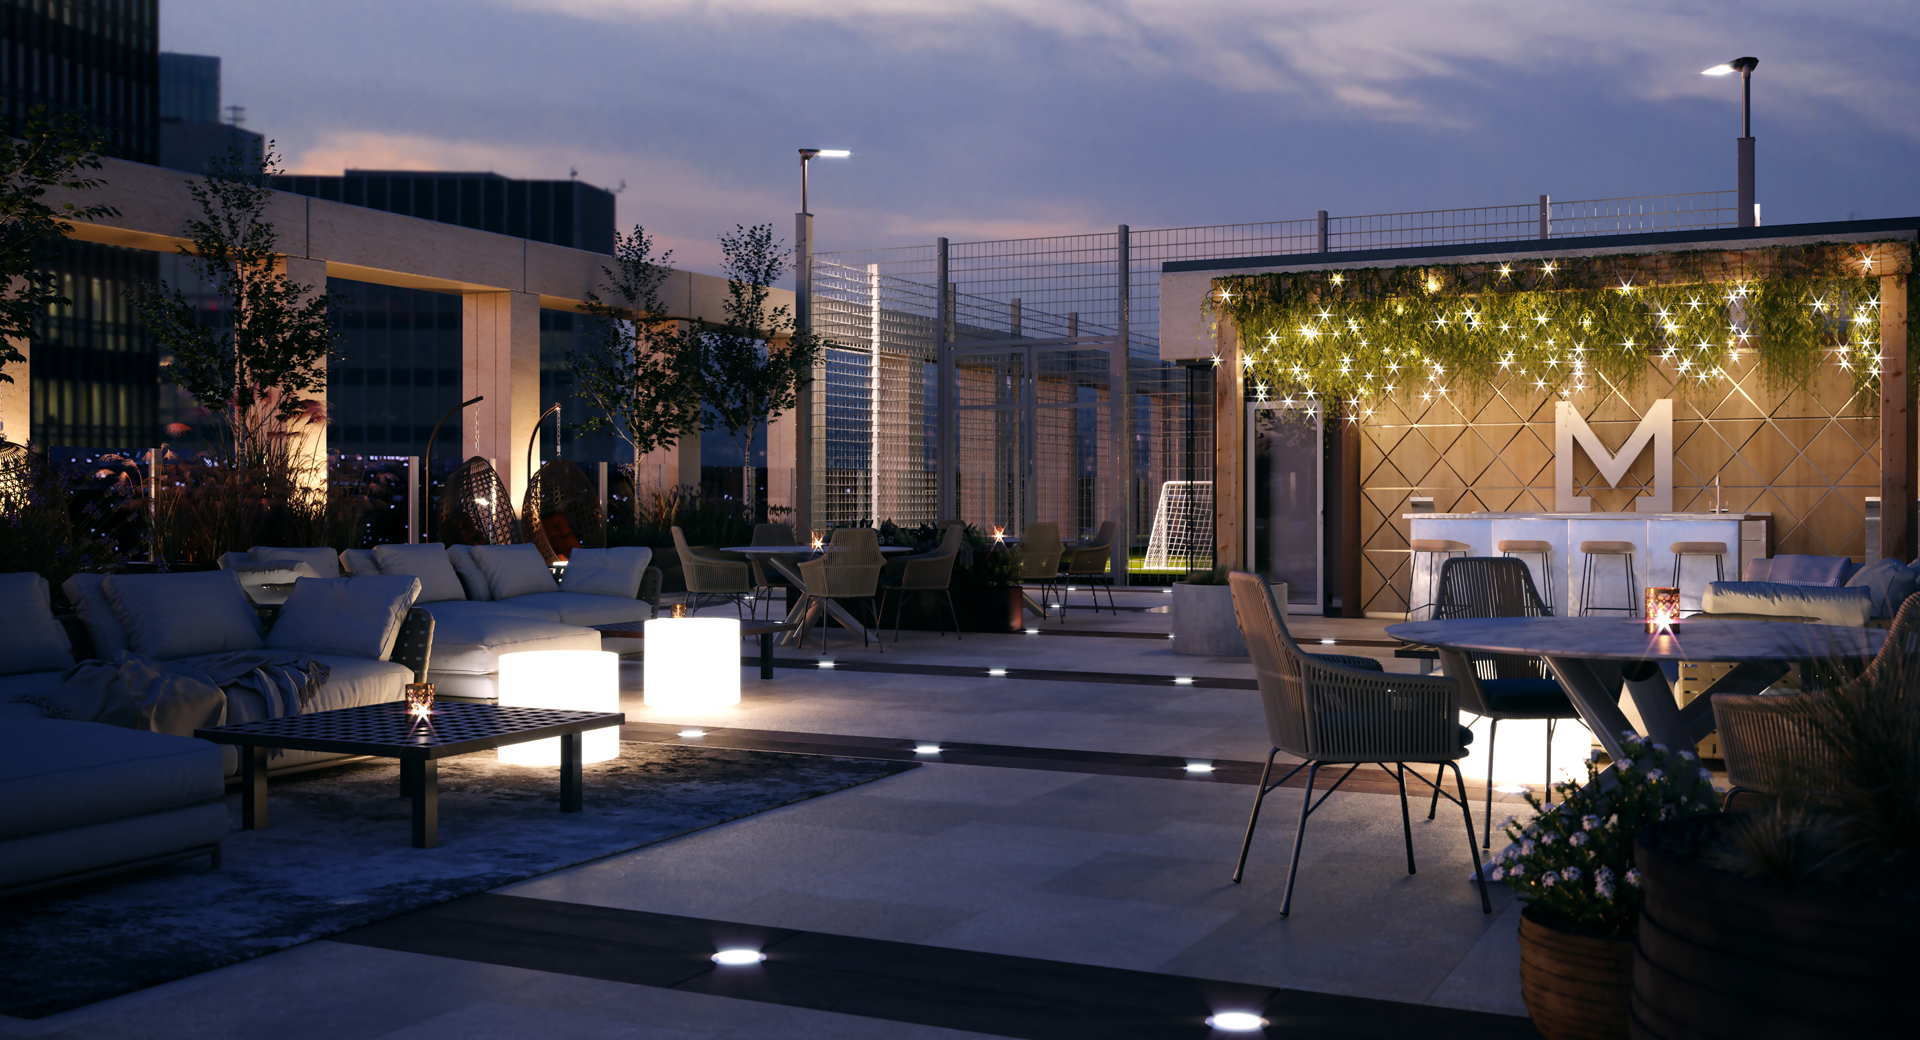 rooftop bar with wooden seating and geometric patterned cushions